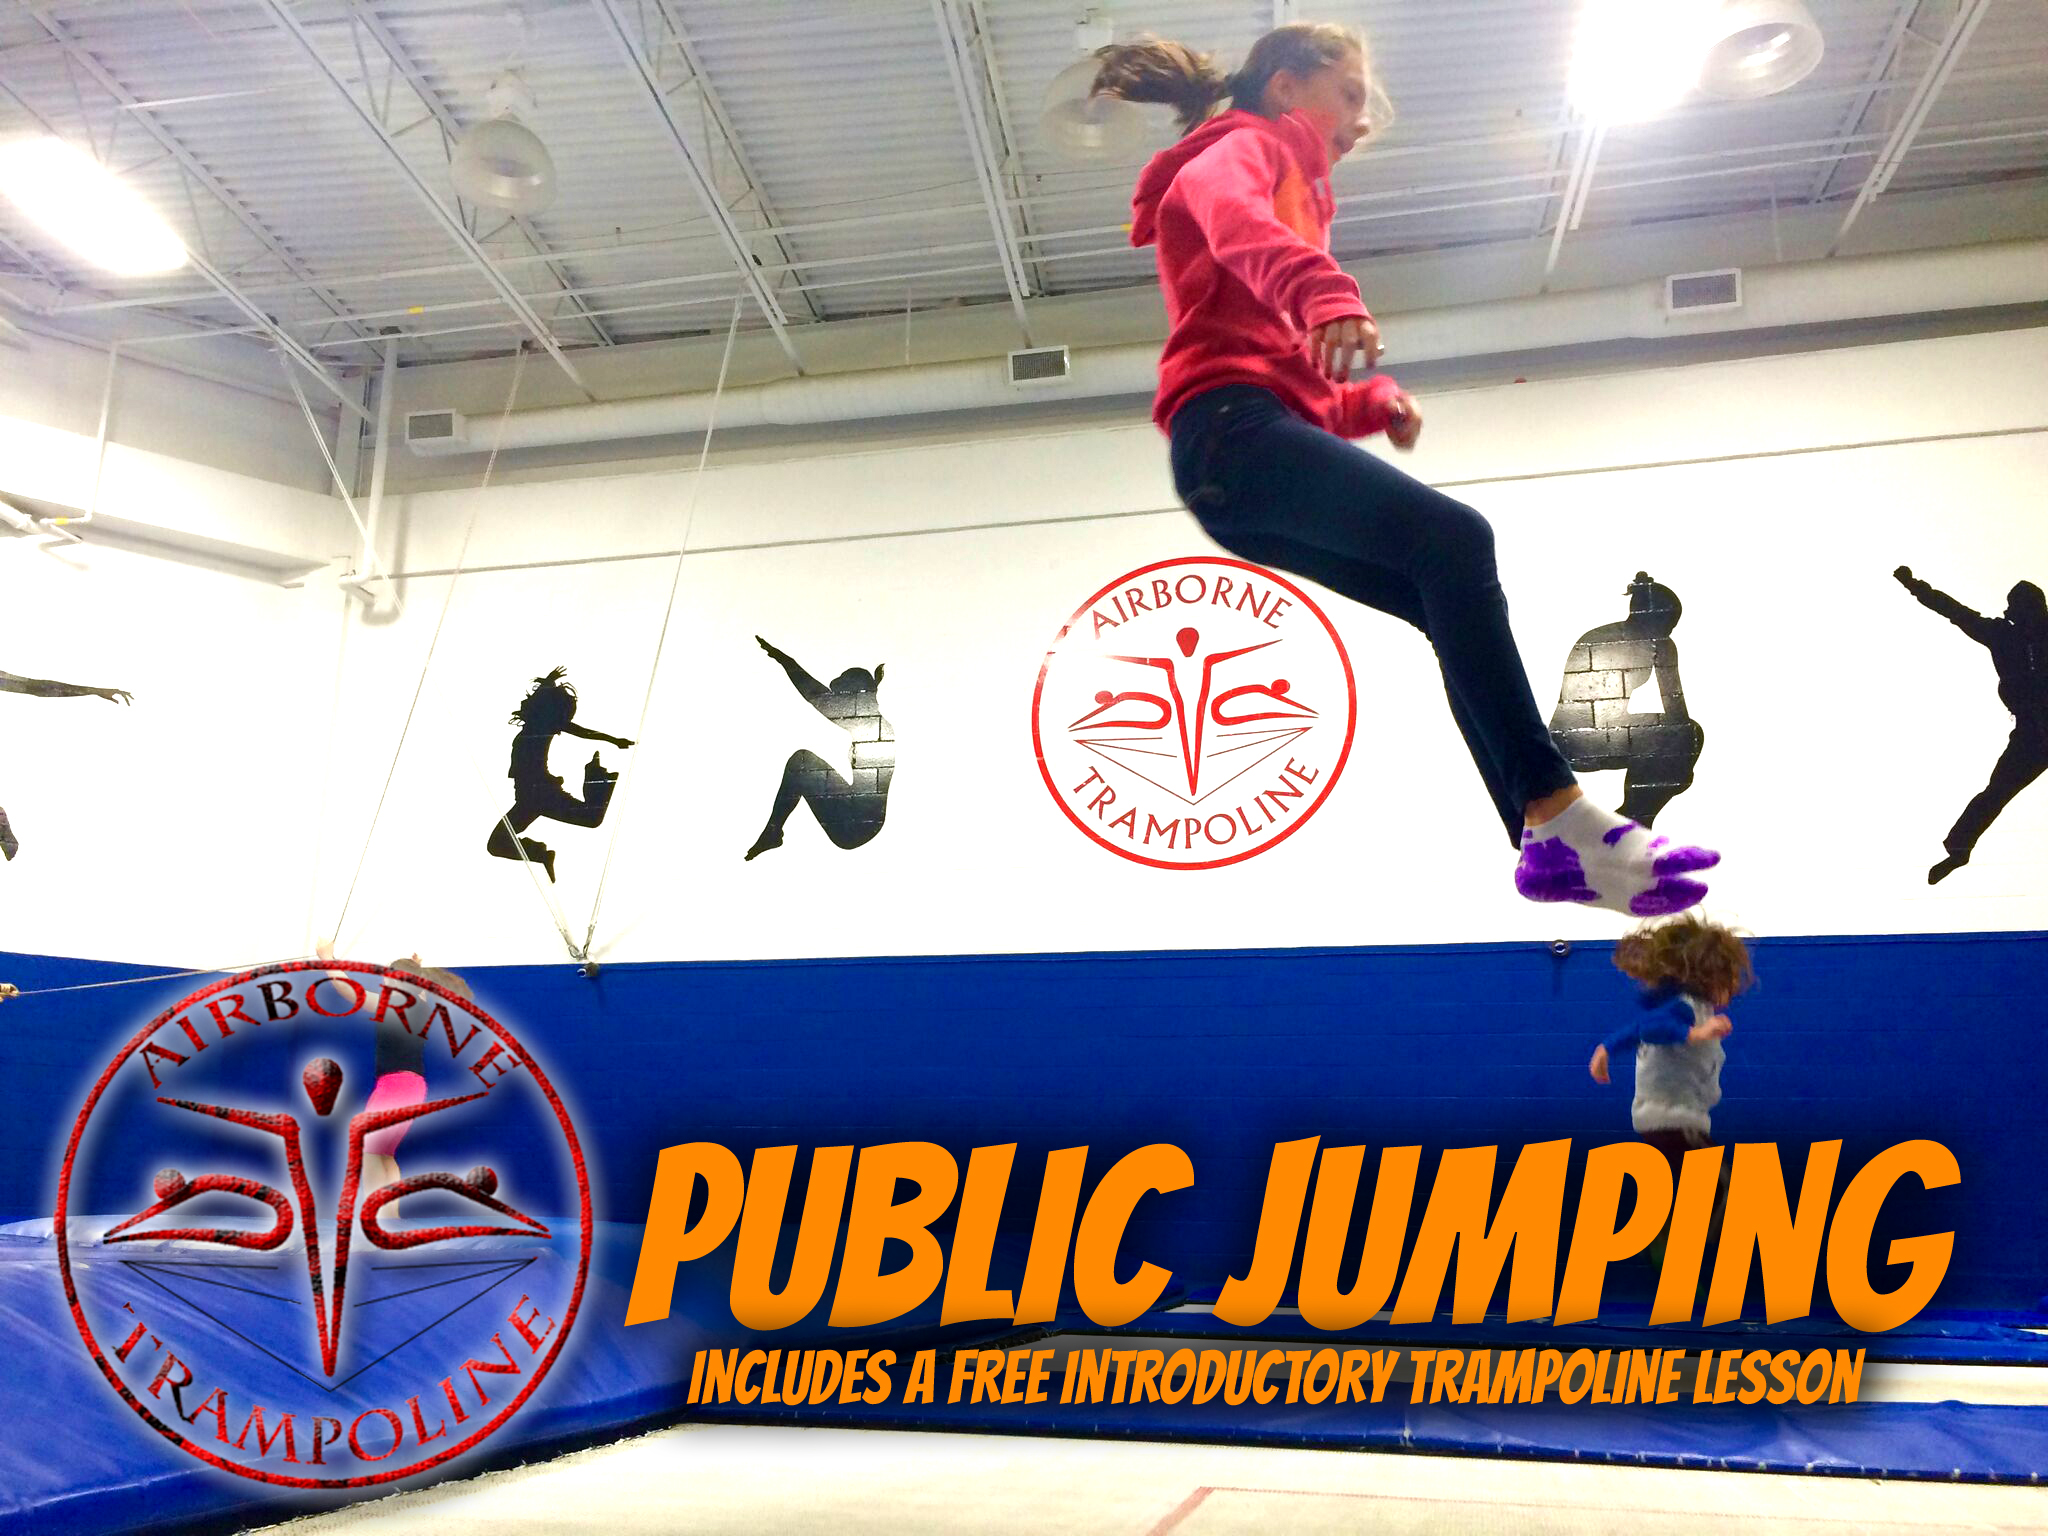 Public Jumping Airborne Trampoline Vaughan